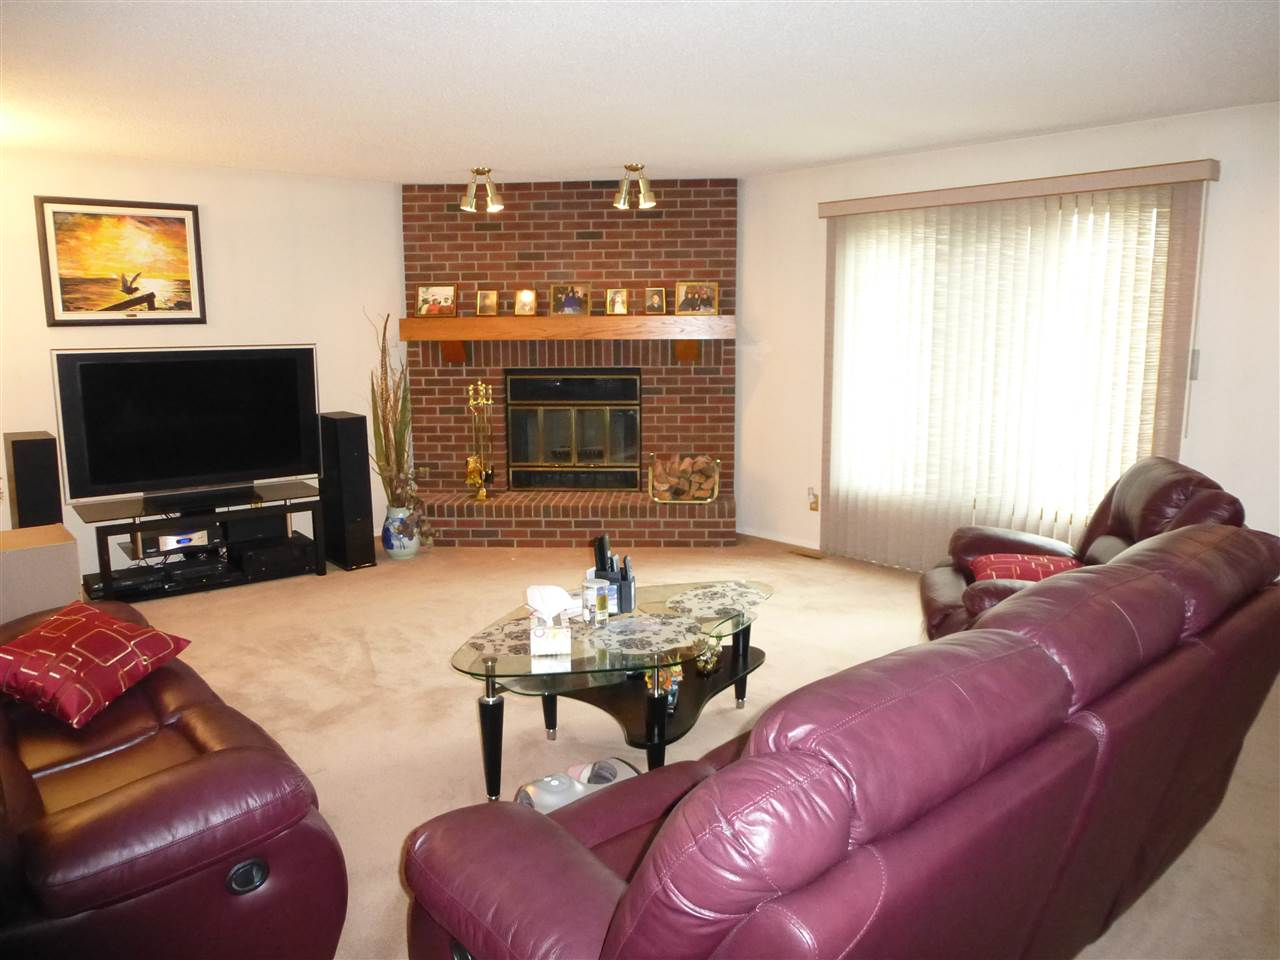 Photo 15: 315 ORMSBY Road in Edmonton: Zone 20 House for sale : MLS(r) # E4059577